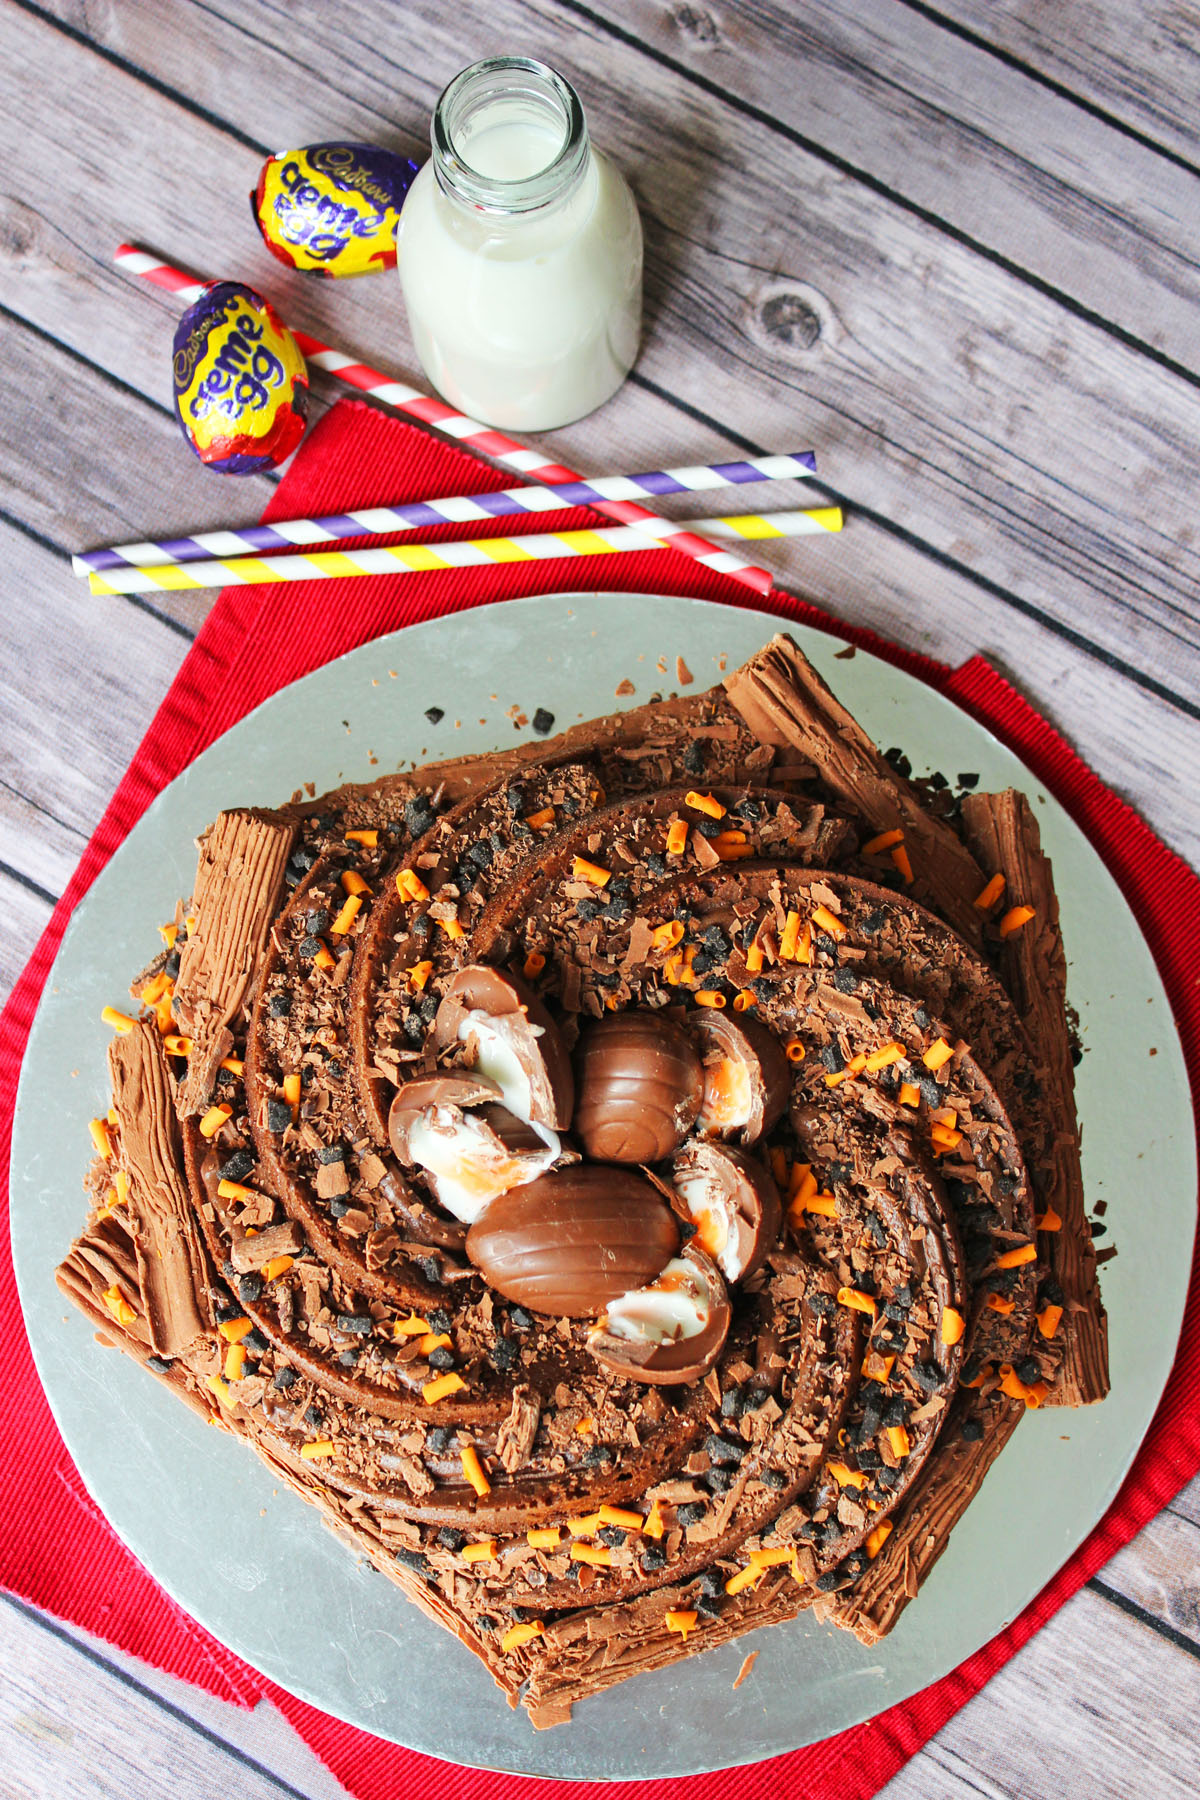 Bake this Cadburys Creme Egg Bundt Cake this Easter for a showstopping centre piece. Recipe on Supper in the Suburbs